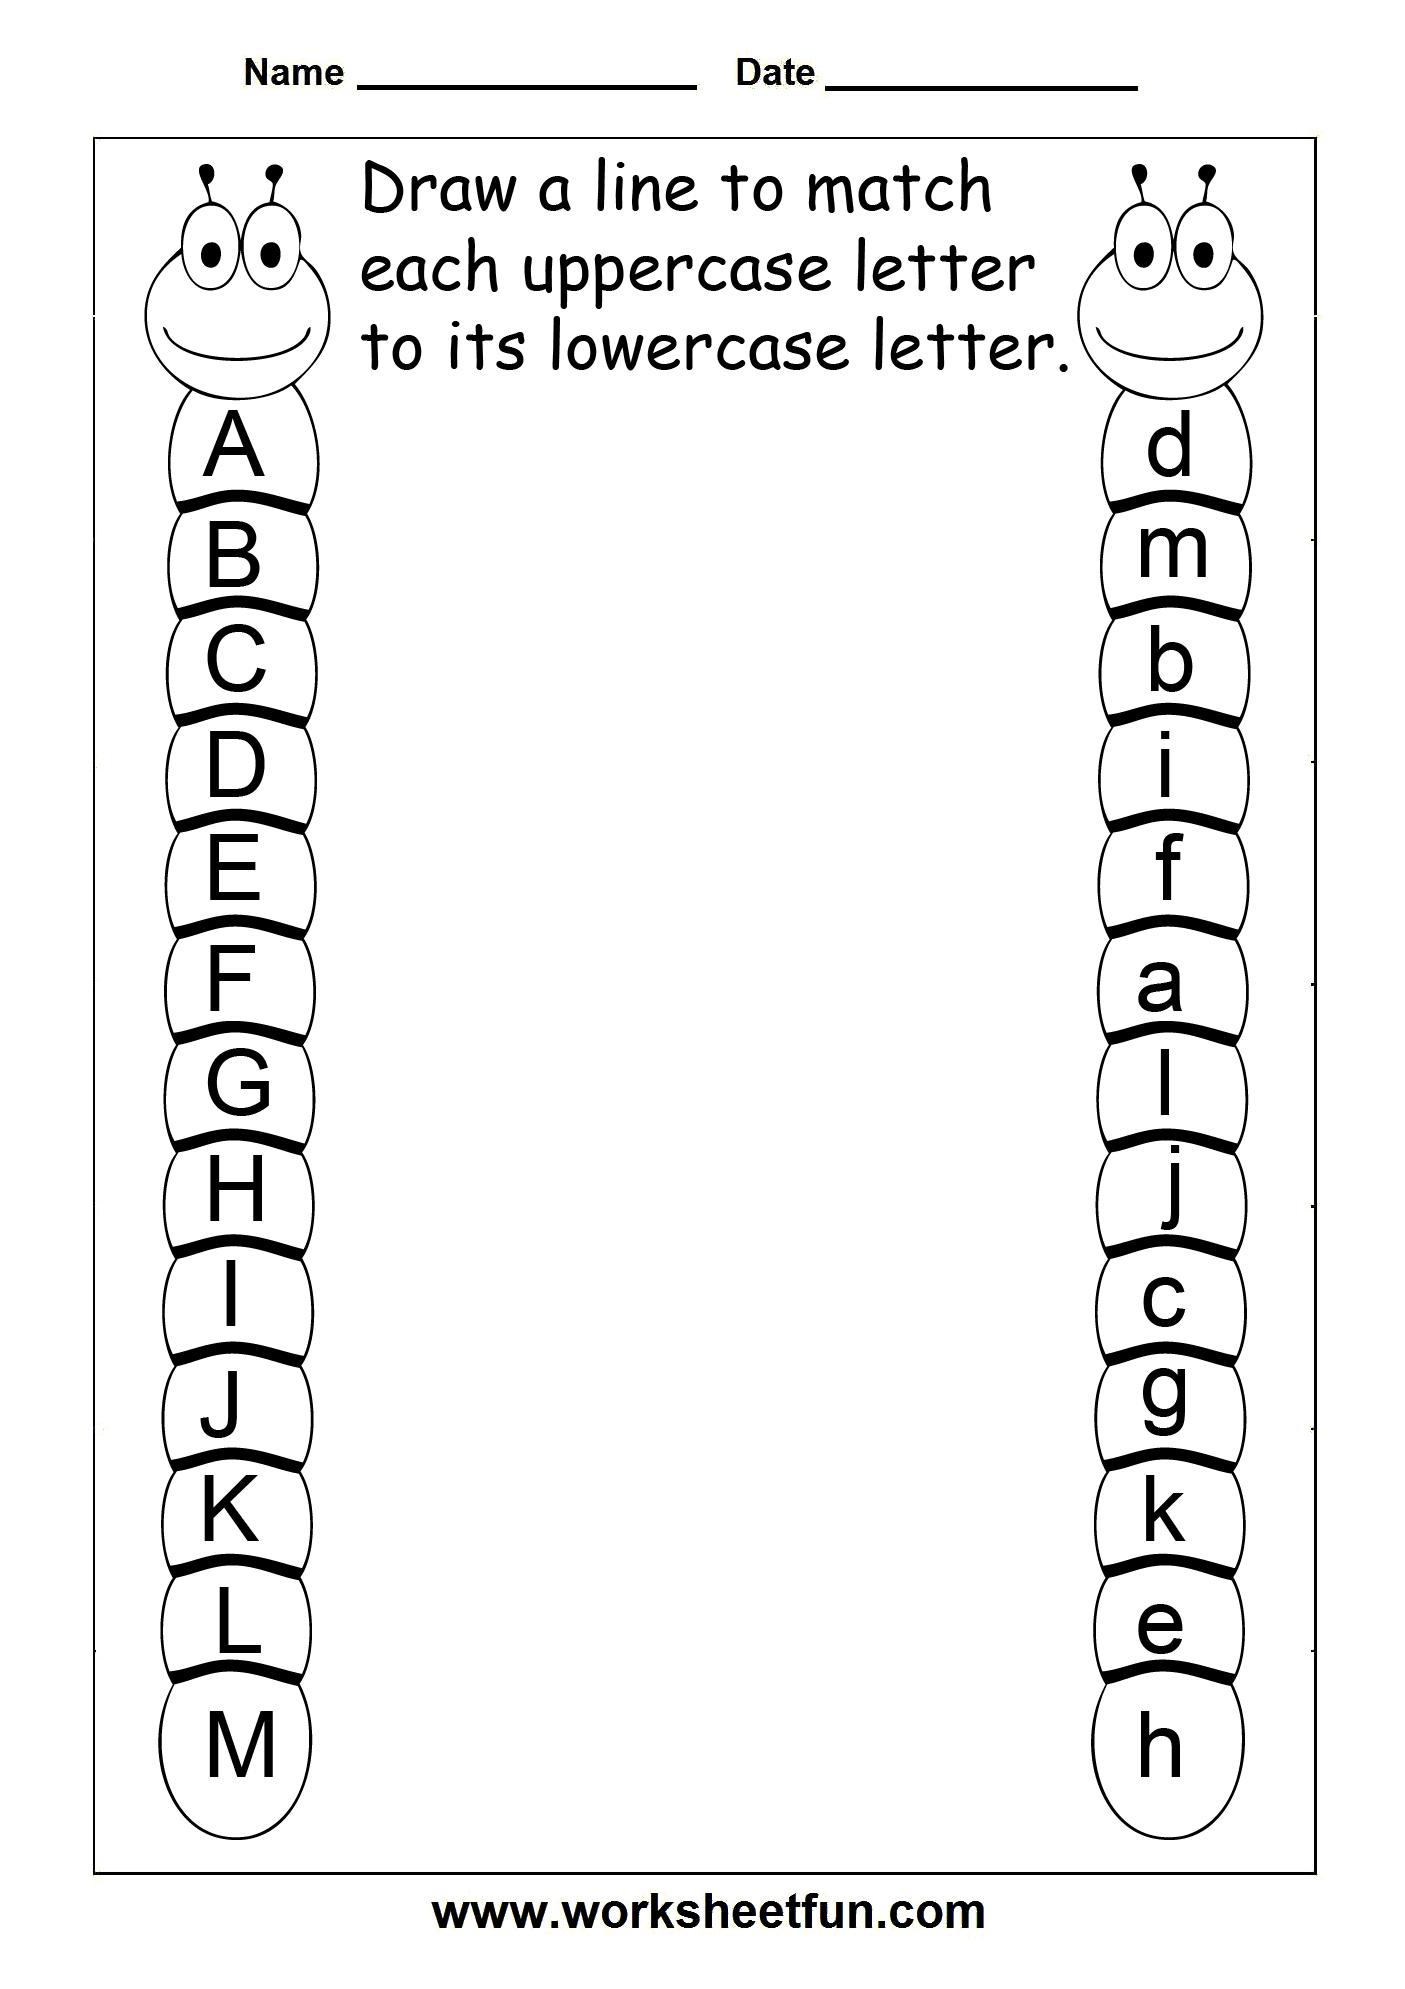 Weirdmailus  Wonderful  Images About Work Worksheet On Pinterest  Hidden Pictures  With Gorgeous  Images About Work Worksheet On Pinterest  Hidden Pictures Color By Numbers And Puzzles With Enchanting Kindergarten Drawing Worksheets Also Math Worksheets Rounding In Addition  Way Frequency Table Worksheet And Clocks Worksheet As Well As Water The Universal Solvent Worksheet Additionally Place Value Worksheet Th Grade From Pinterestcom With Weirdmailus  Gorgeous  Images About Work Worksheet On Pinterest  Hidden Pictures  With Enchanting  Images About Work Worksheet On Pinterest  Hidden Pictures Color By Numbers And Puzzles And Wonderful Kindergarten Drawing Worksheets Also Math Worksheets Rounding In Addition  Way Frequency Table Worksheet From Pinterestcom